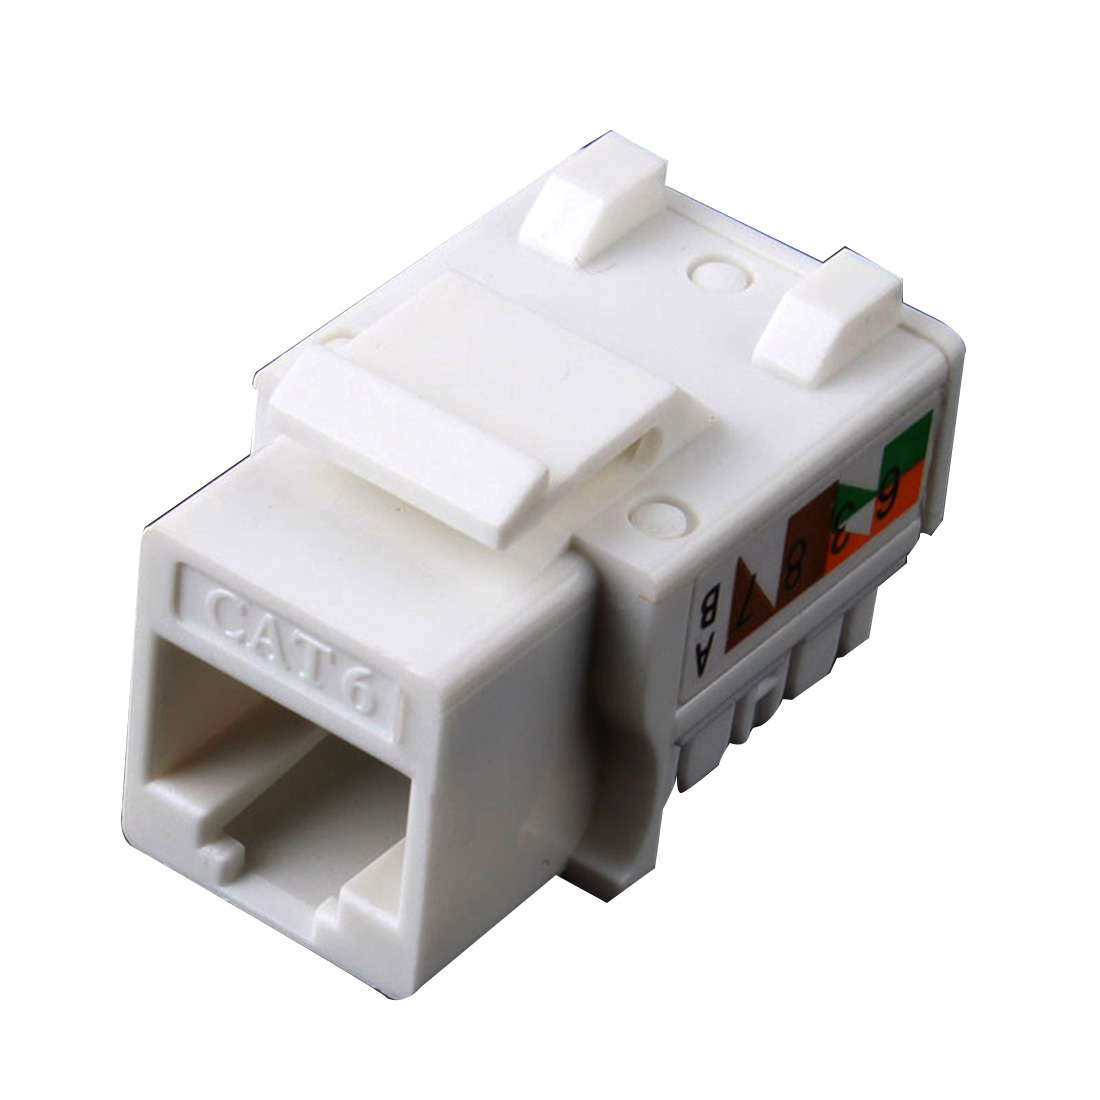 Marsnaska 5Pcs/lot CAT6 RJ45 110 Punch Down Keystone Network ...